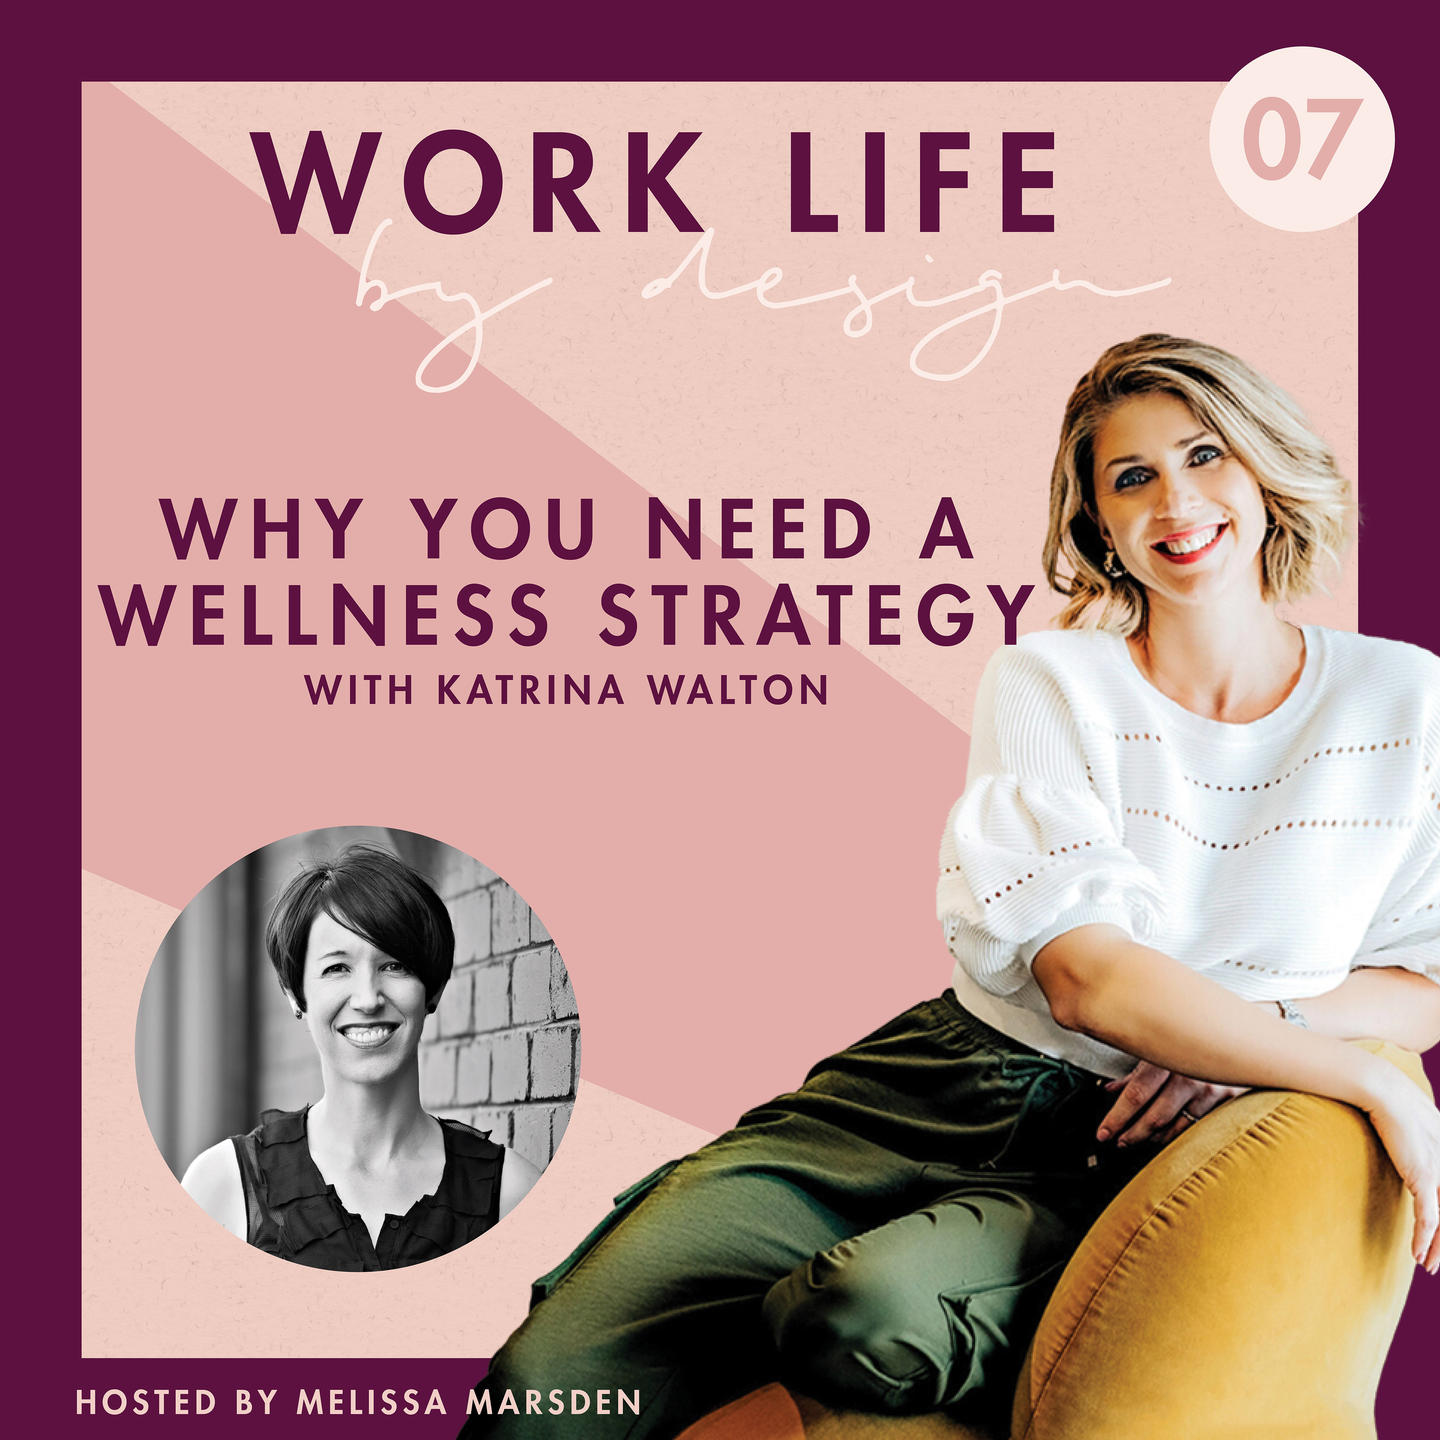 Why you need a wellness strategy with Katrina Walton | Work Life By Design Podcast Melissa Marsden